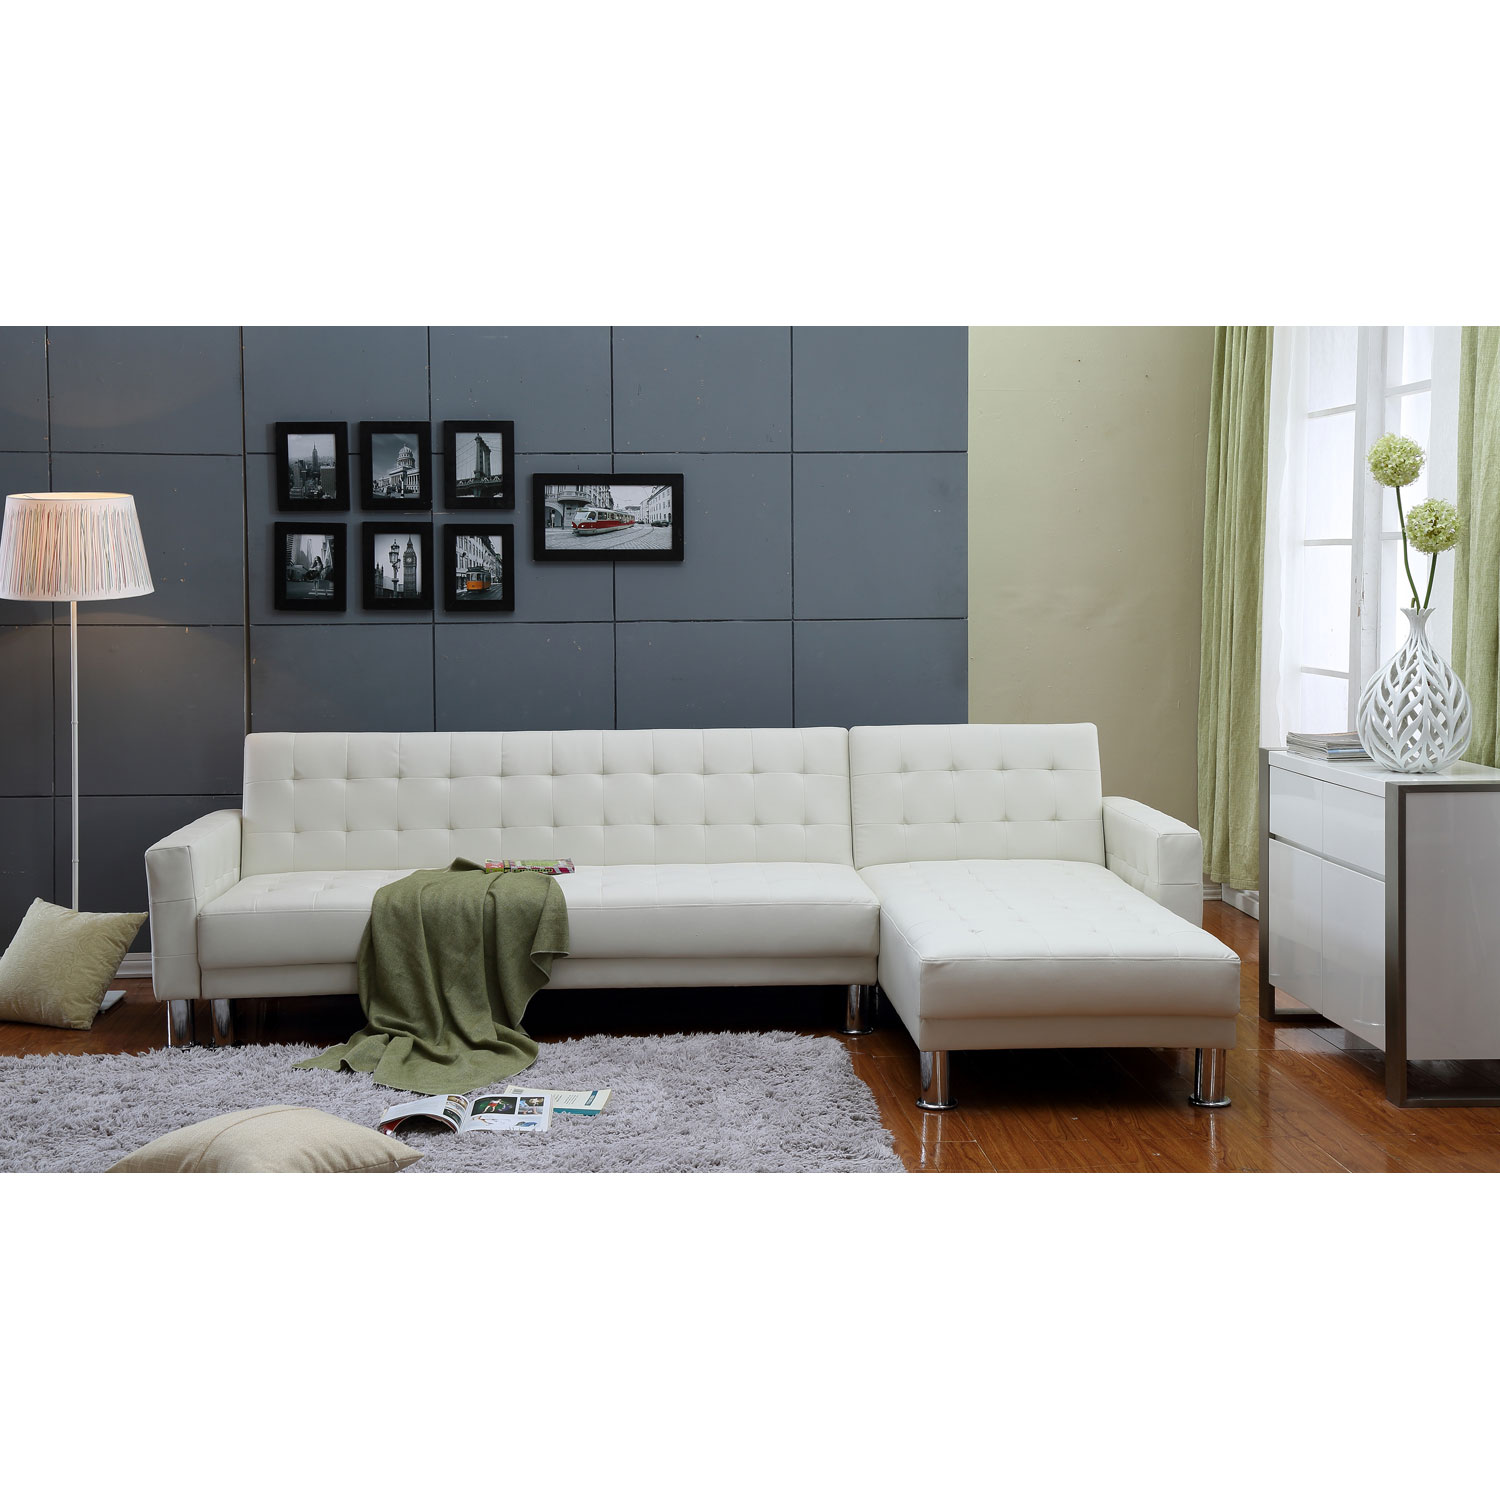 white leather sectional sofa bed photo - 6